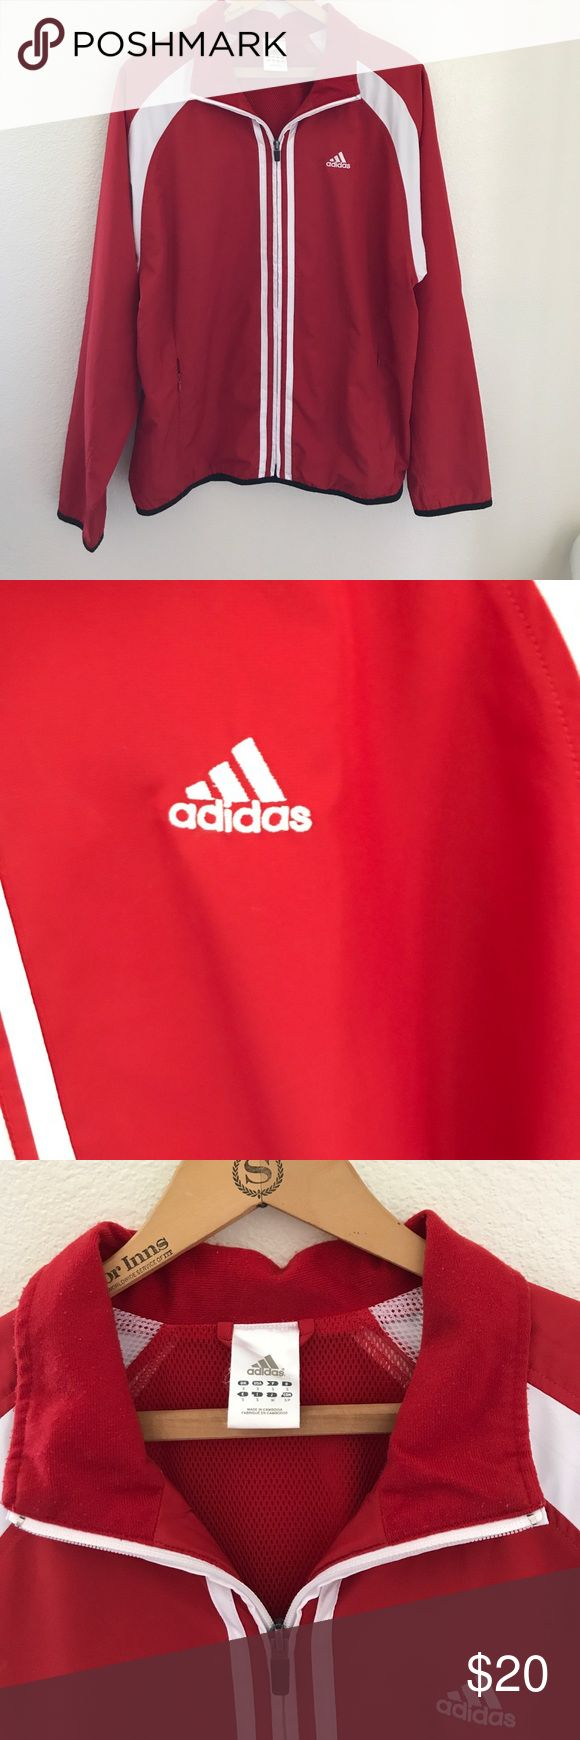 Mens red and white Adidas track jacket size small Mens red and white adidas track jacket size small. Great for even a woman. Has zippered front pockets and all zippers work really good. It has the windbreaker type material on the outside . adidas Jackets & Coats